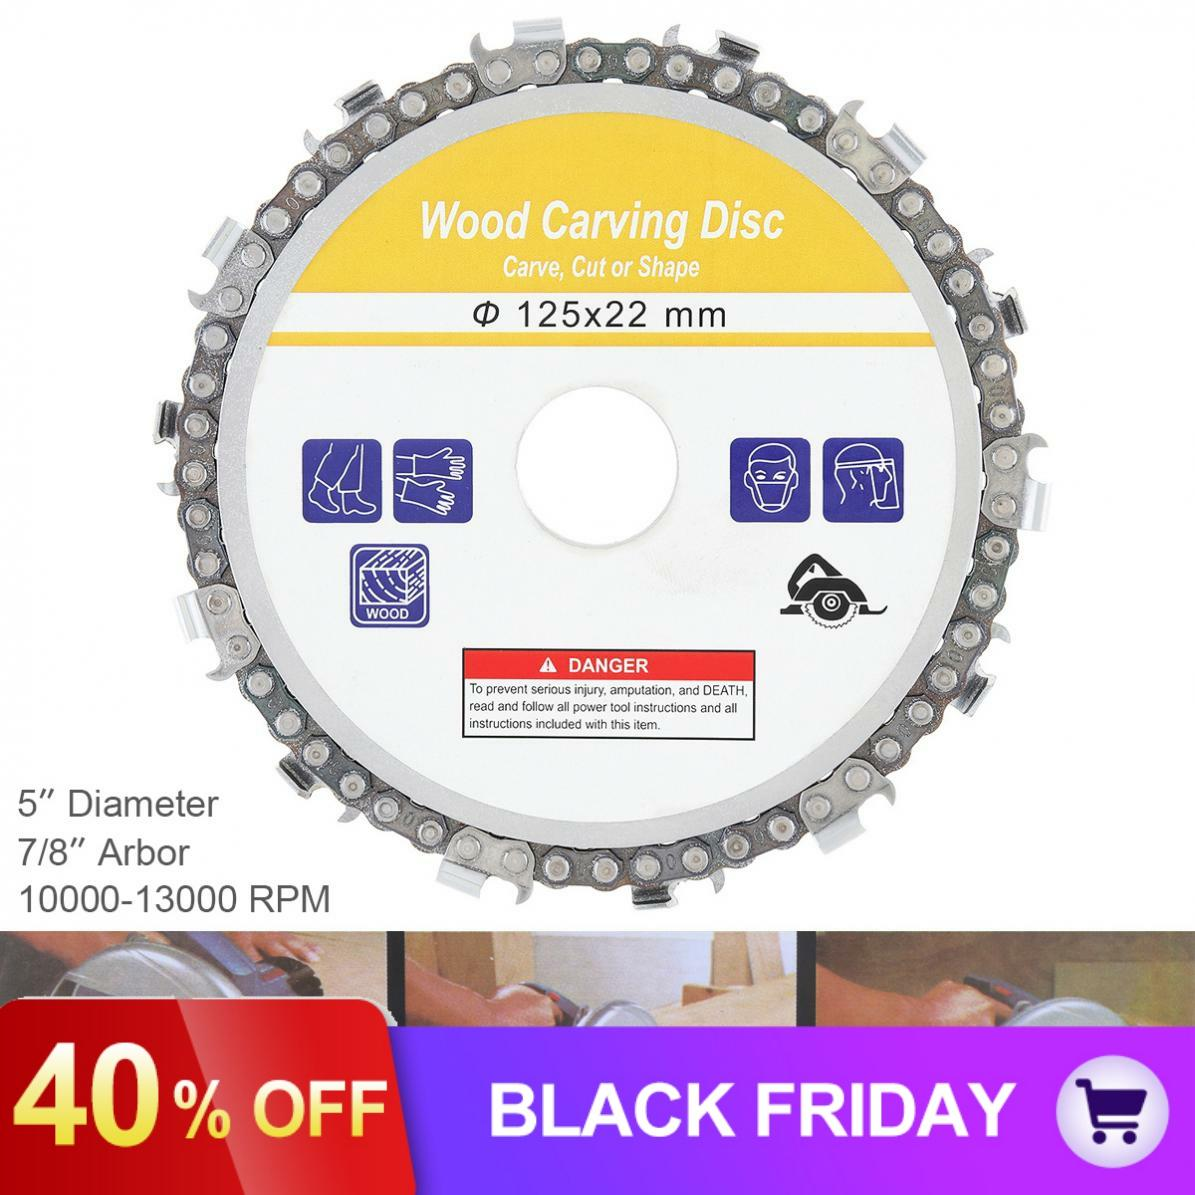 5 Inch 125 X 22mm 14 Tooth Wood Carving Disc Saw Blade Angle Mill Slotted Sawblade Wood Cutting Angle Grinding Chain Disk